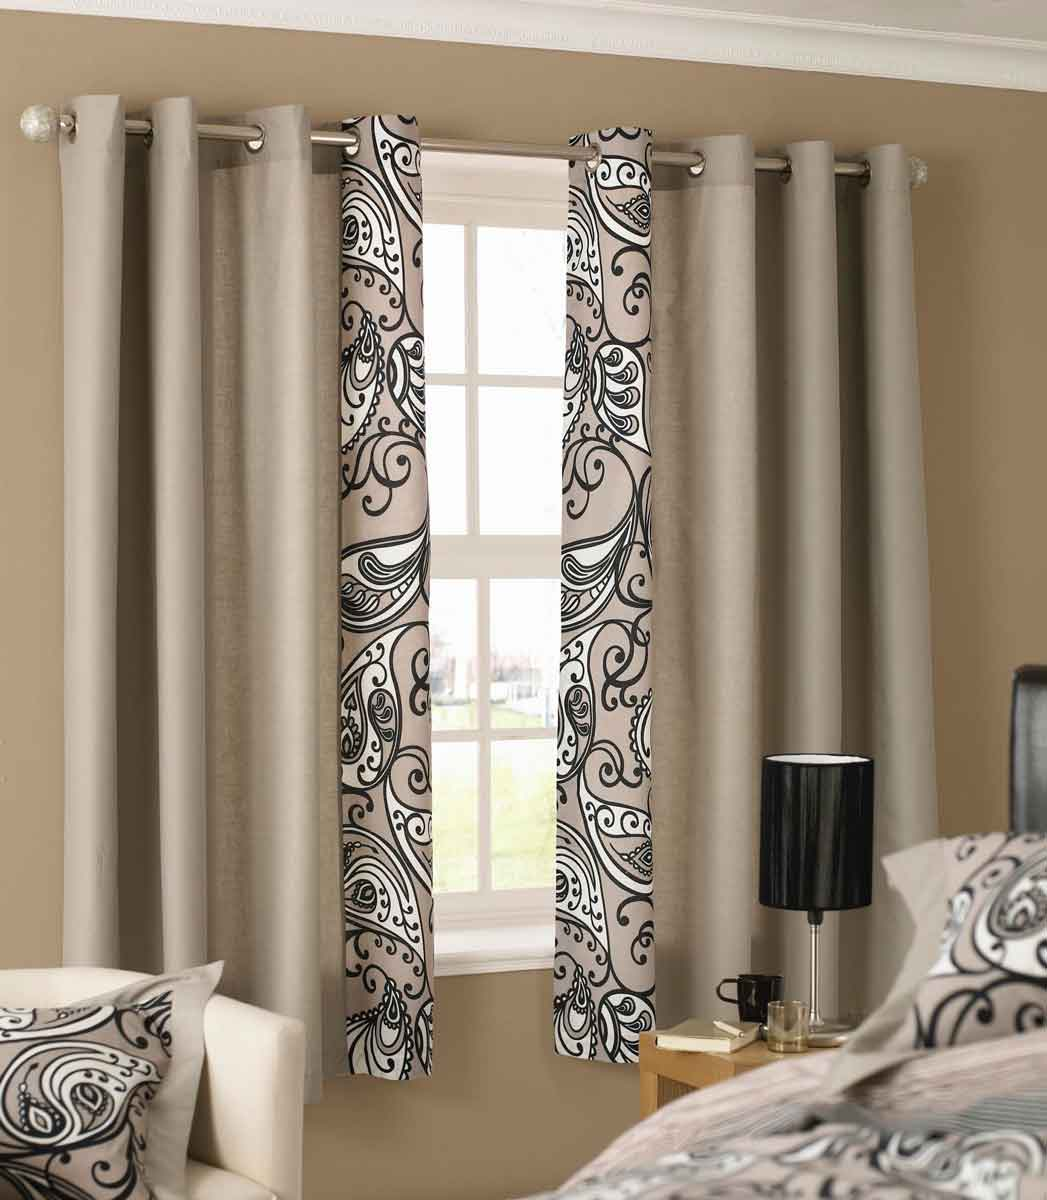 Image small bathroom window curtain ideas beautiful for Bedroom curtain ideas